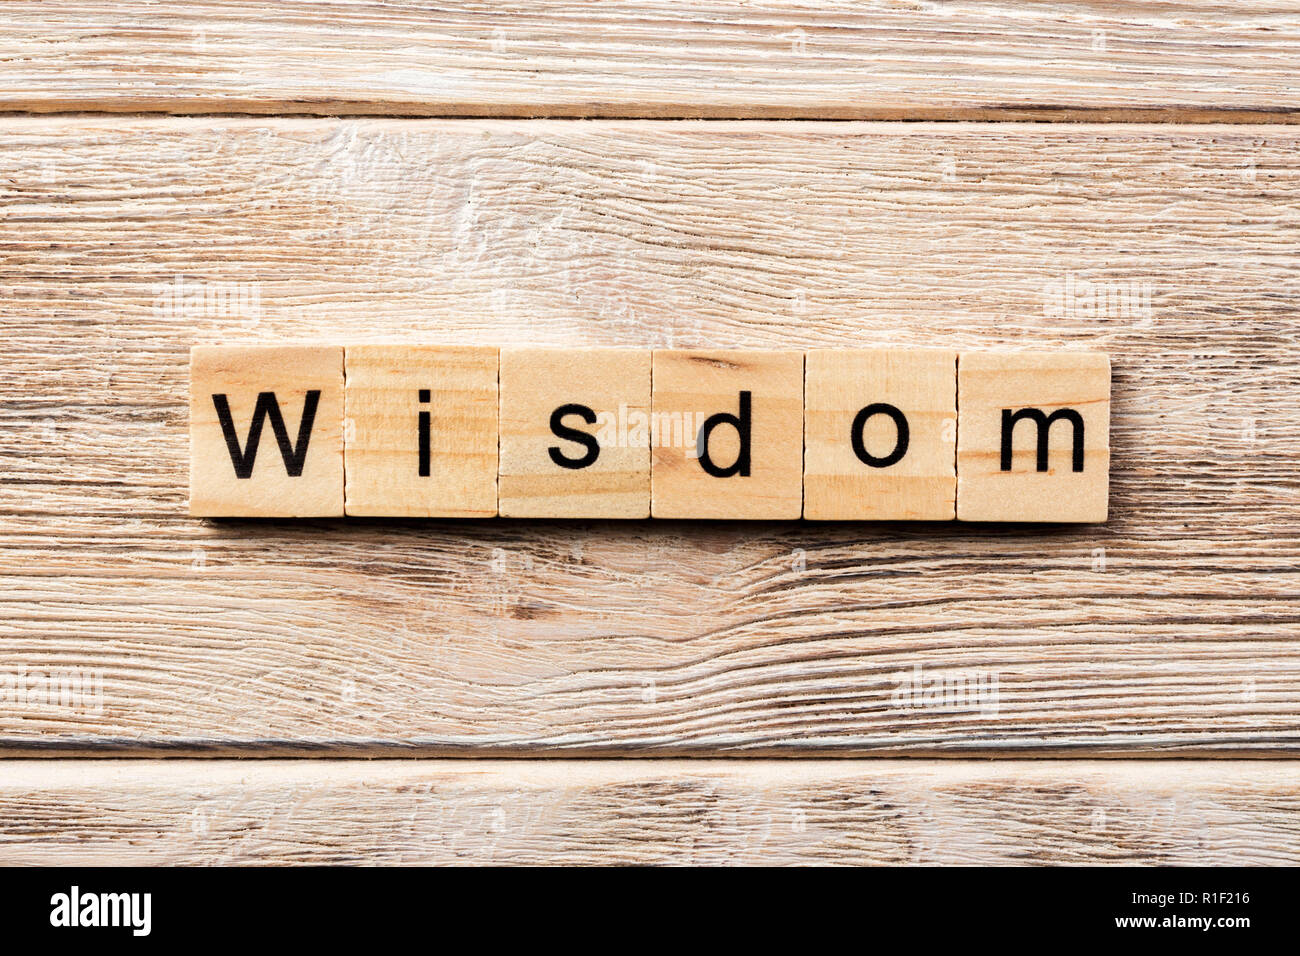 wisdom word written on wood block. wisdom text on table, concept. - Stock Image